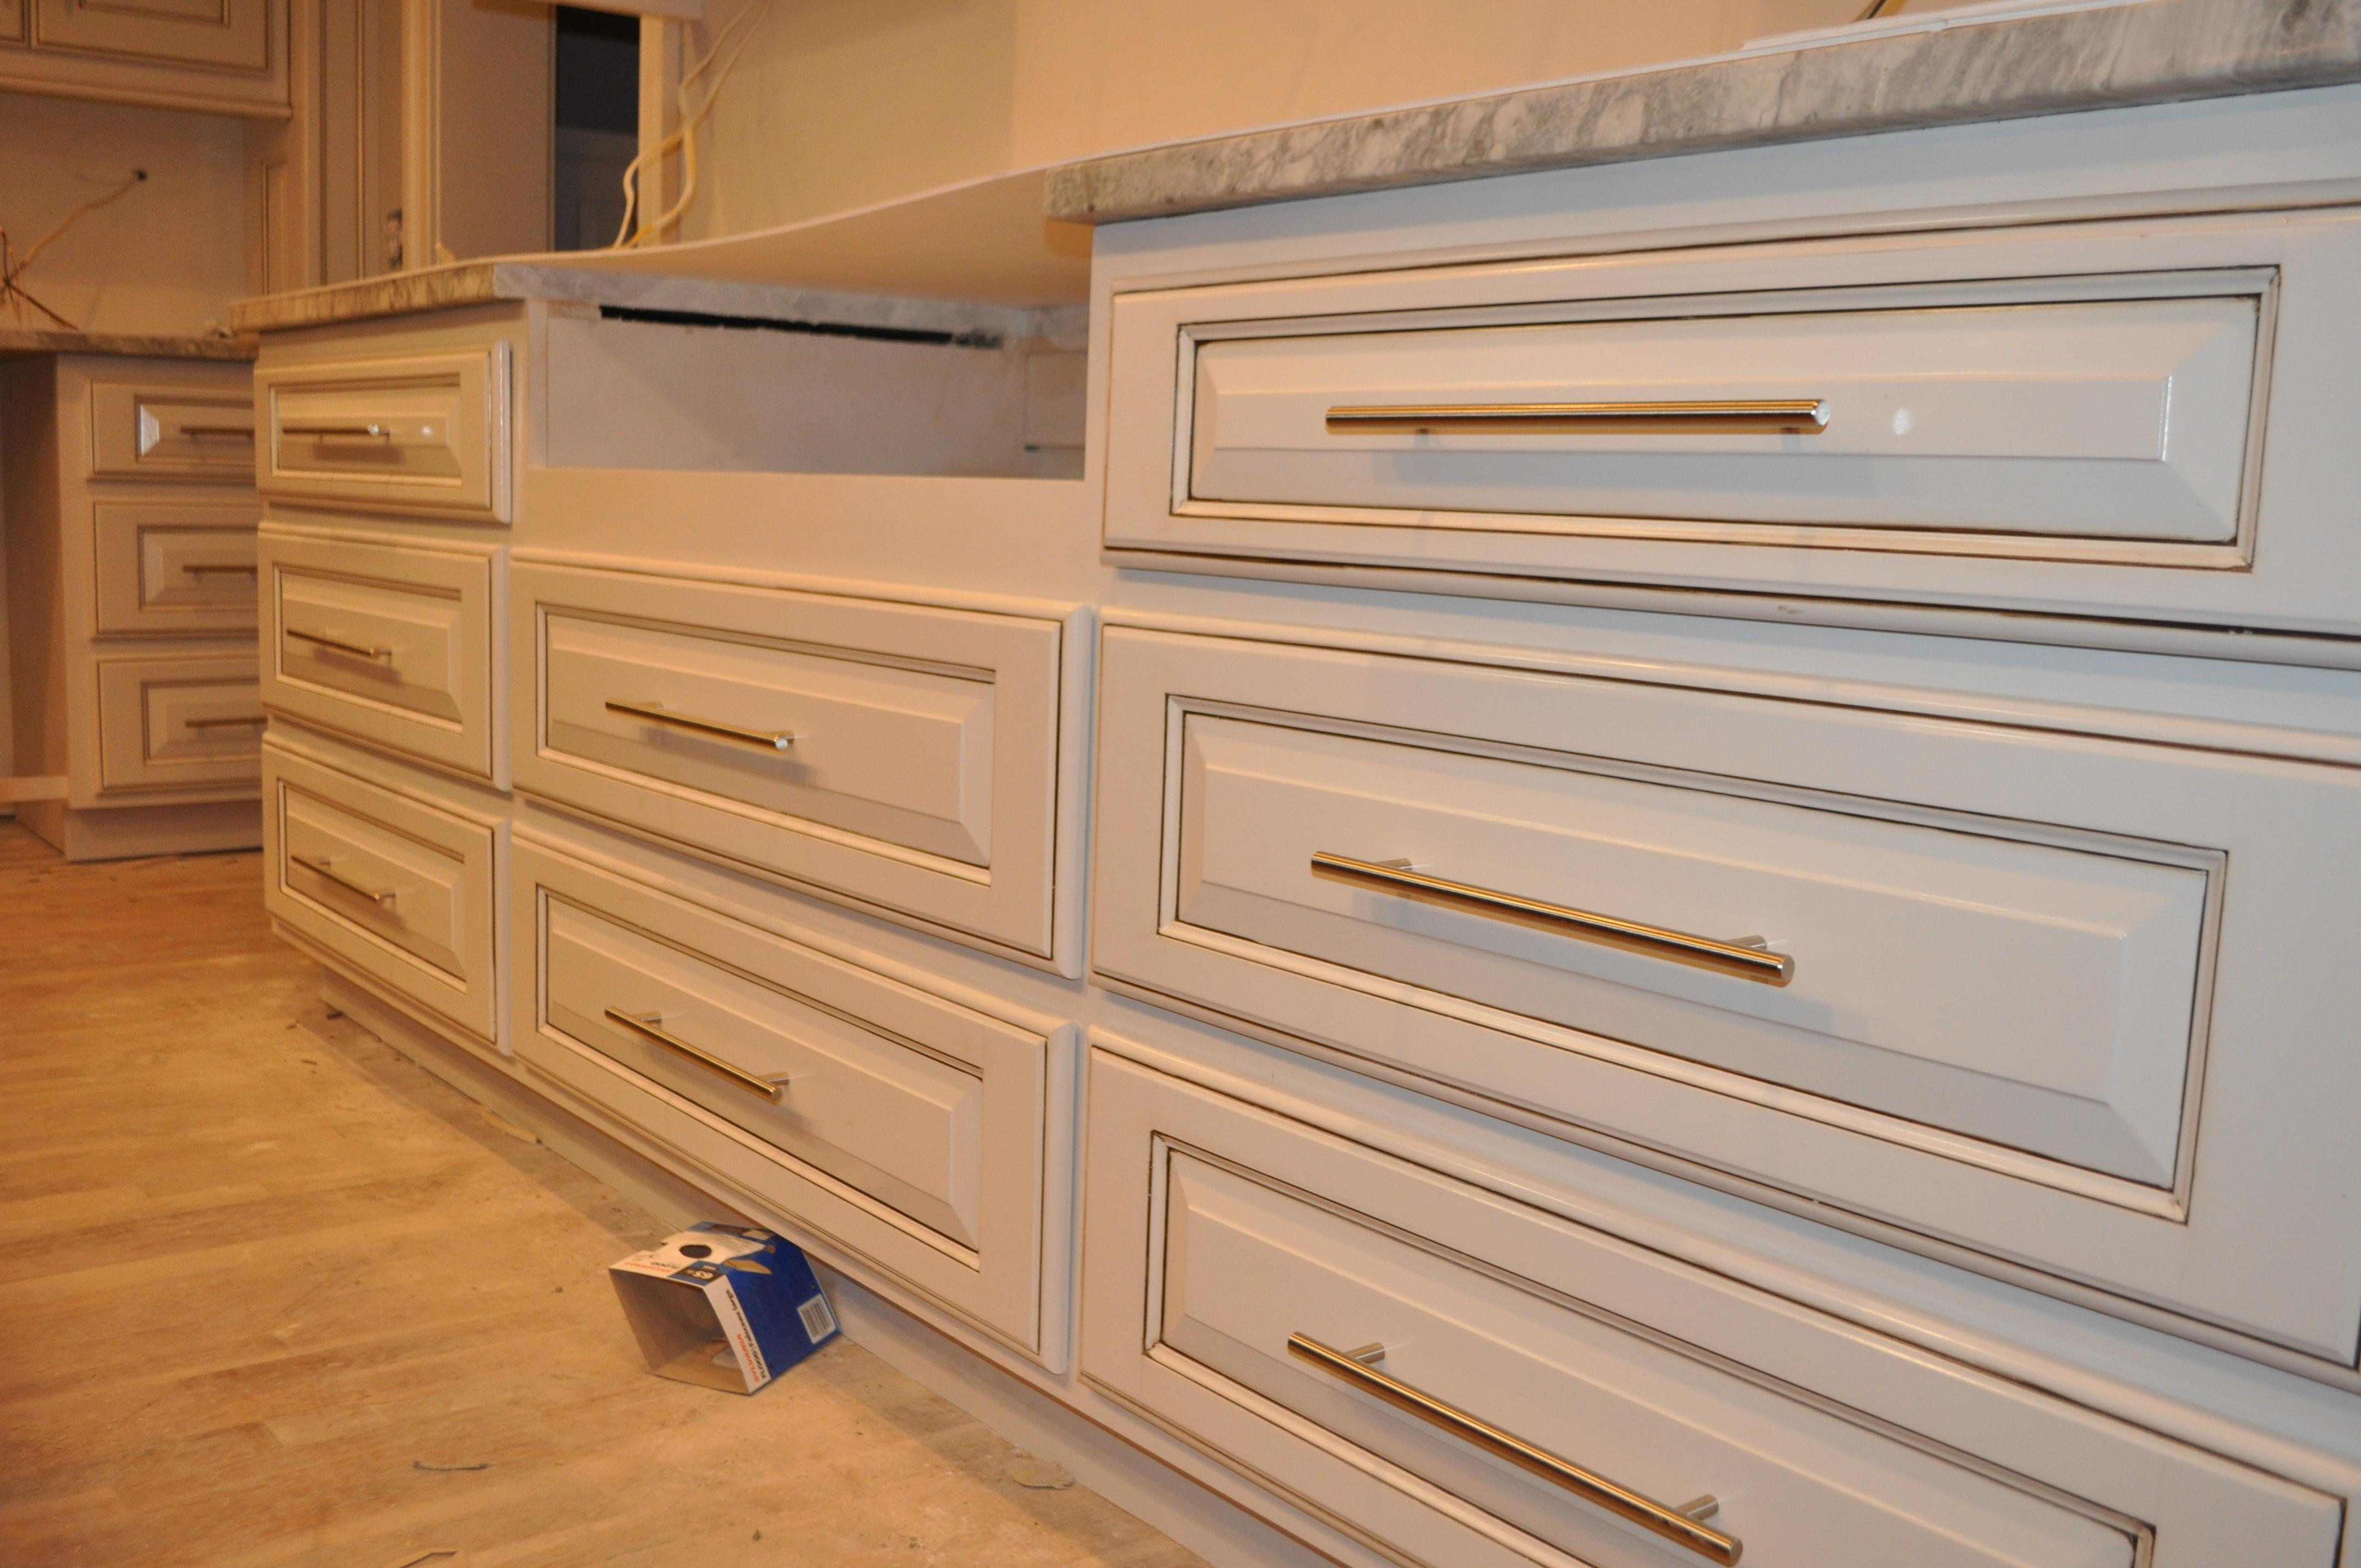 Marvelous Hardware For Kitchen Cabinets And Drawers. Hardware Kitchen Cabinets  Drawers Cabinet Village Cape